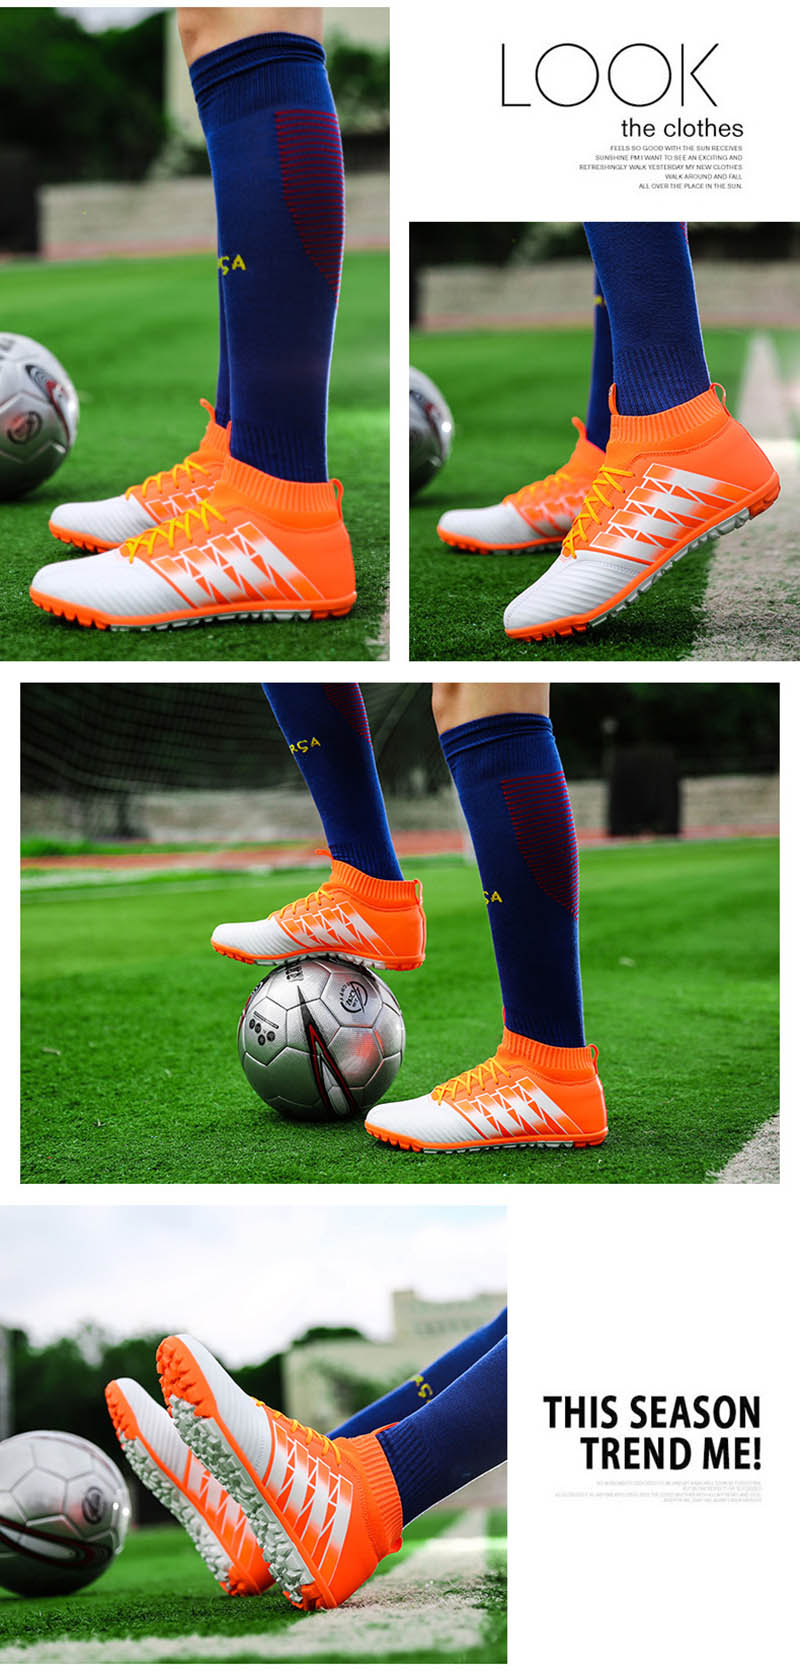 professional-soccer-shoes-football-boots-men-boy-fustal-soccer-cleats-sneakers (8)